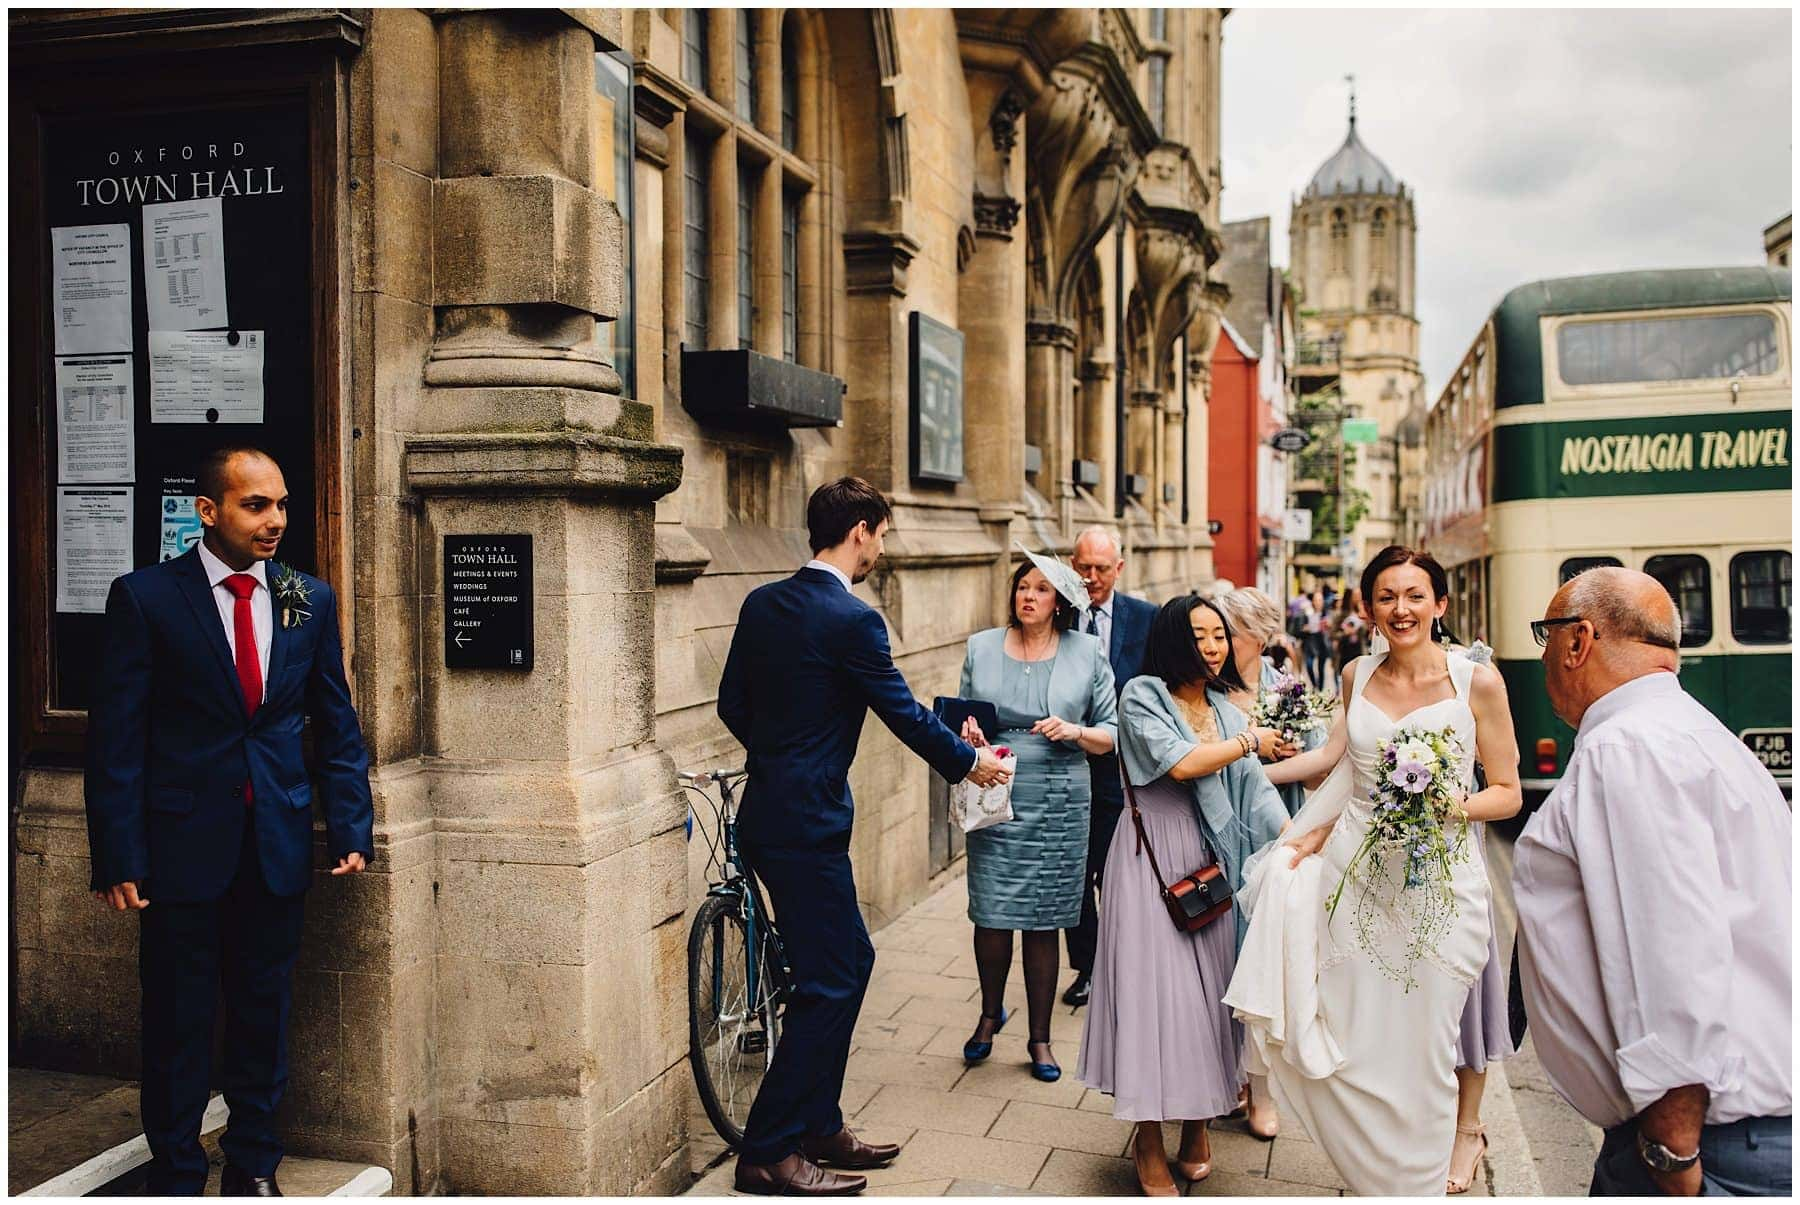 Oxfordshire wedding Photographer J S Coates Wedding Photography. Oxford Town Hall & The Perch Pub 28